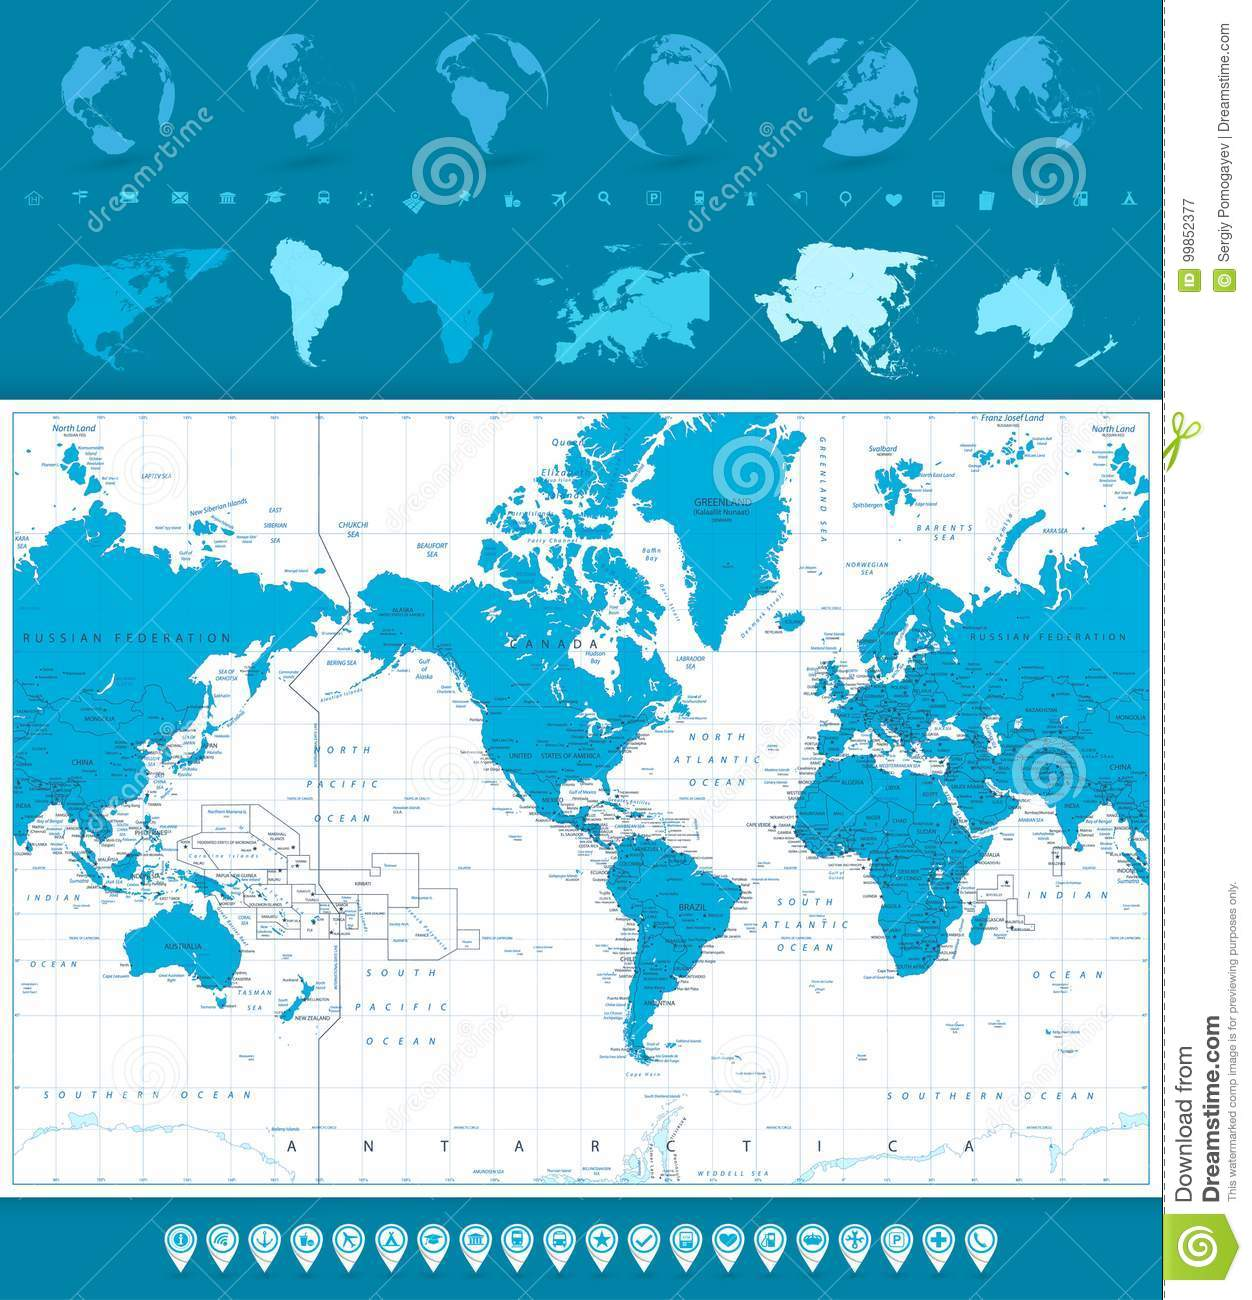 World map globes and navigation icons america in center stock download world map globes and navigation icons america in center stock vector illustration gumiabroncs Image collections